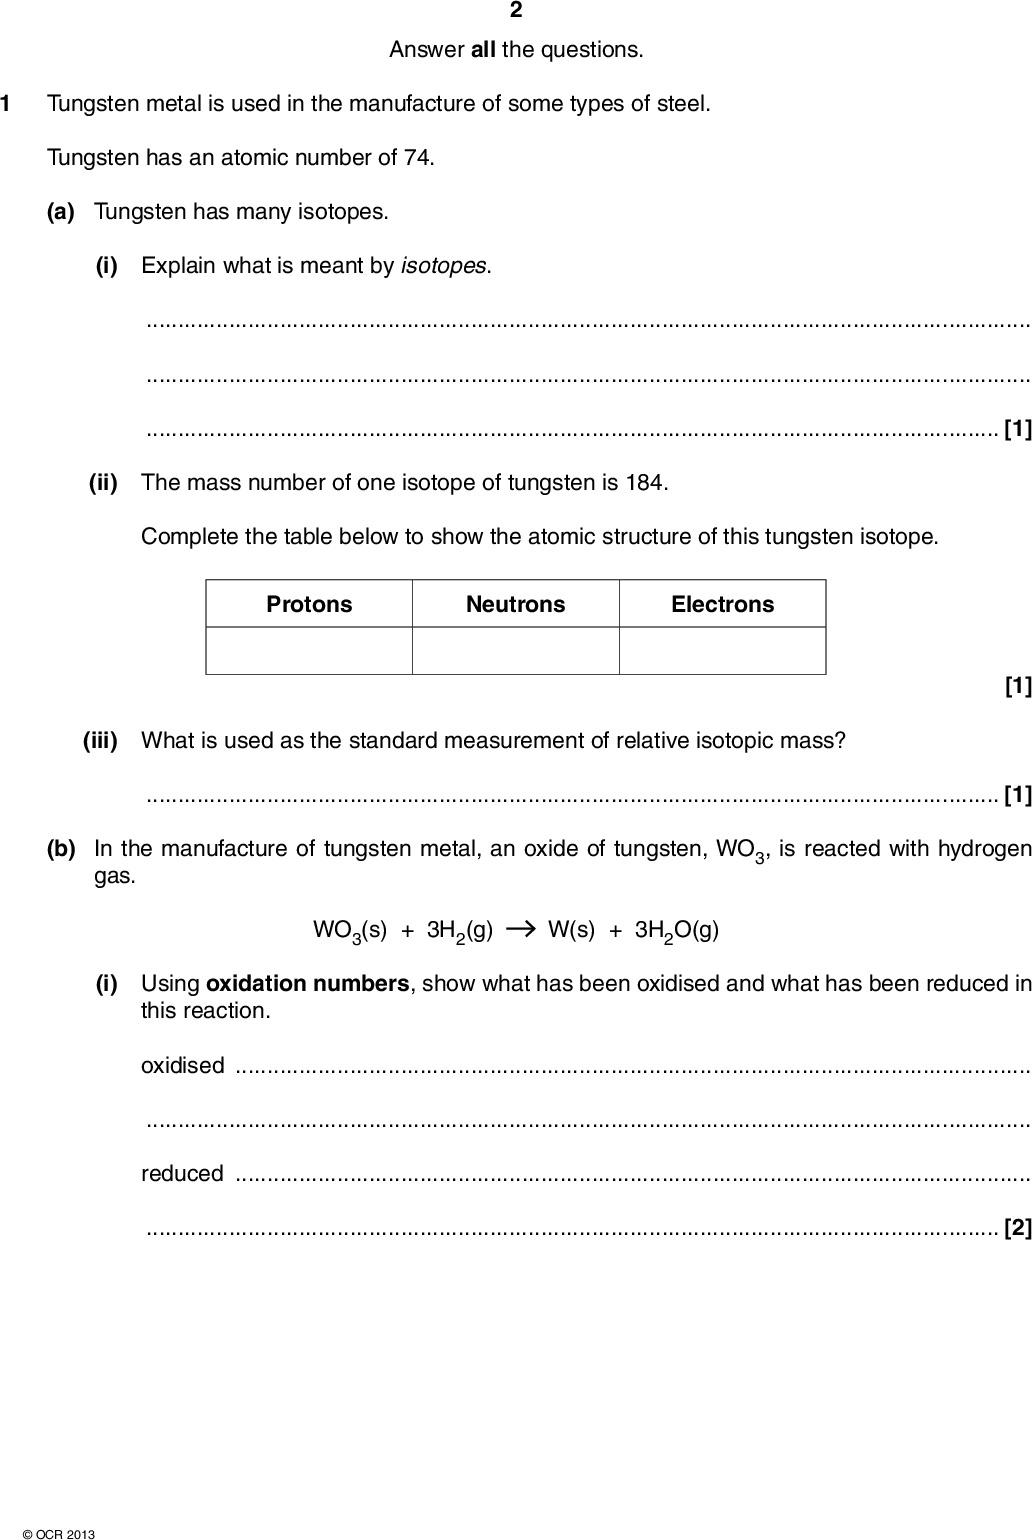 Answer all the questions. Tungsten metal is used in the manufacture of some types of steel. Tungsten has an atomic number of 74. (a) Tungsten has many isotopes. (i) Explain what is meant by isotopes.[1] (ii) The mass number of one isotope of tungsten is 184. Complete the table below to show the atomic structure of this tungsten isotope. Protons Neutrons Electrons [1] (iii) What is used as the standard measurement of relative isotopic mass?[1] (b) In the manufacture of tungsten metal, an oxide of tungsten, WO3, is reacted with hydrogen gas. WO3(s) + 3H2(g) W(s) + 3H2O(g) (i) Using oxidation numbers, show what has been oxidised and what has been reduced in this reaction. oxidisedreduced[2]OCR 2013<br />  (ii) A chemist reacts 11.59 g of WO3 with hydrogen gas. Calculate the volume of hydrogen gas, in dm3, required to completely react with this mass of WO3 at room temperature and pressure. volume of hydrogen gas =dm3 [3] [Total: 8]OCR 2013 Turn over<br />